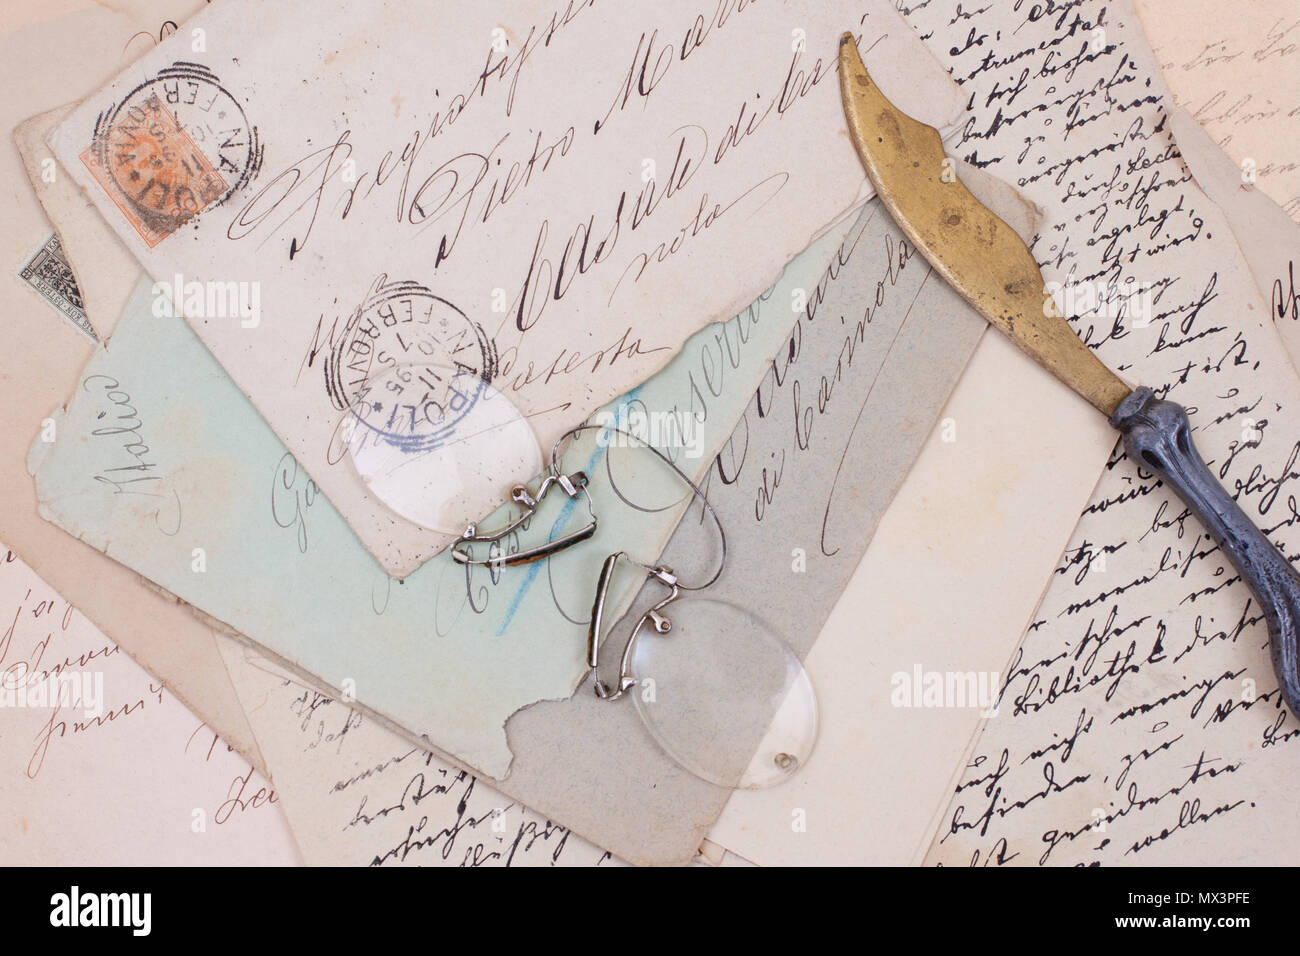 background with old vintage letters and vintage letter opener - Stock Image